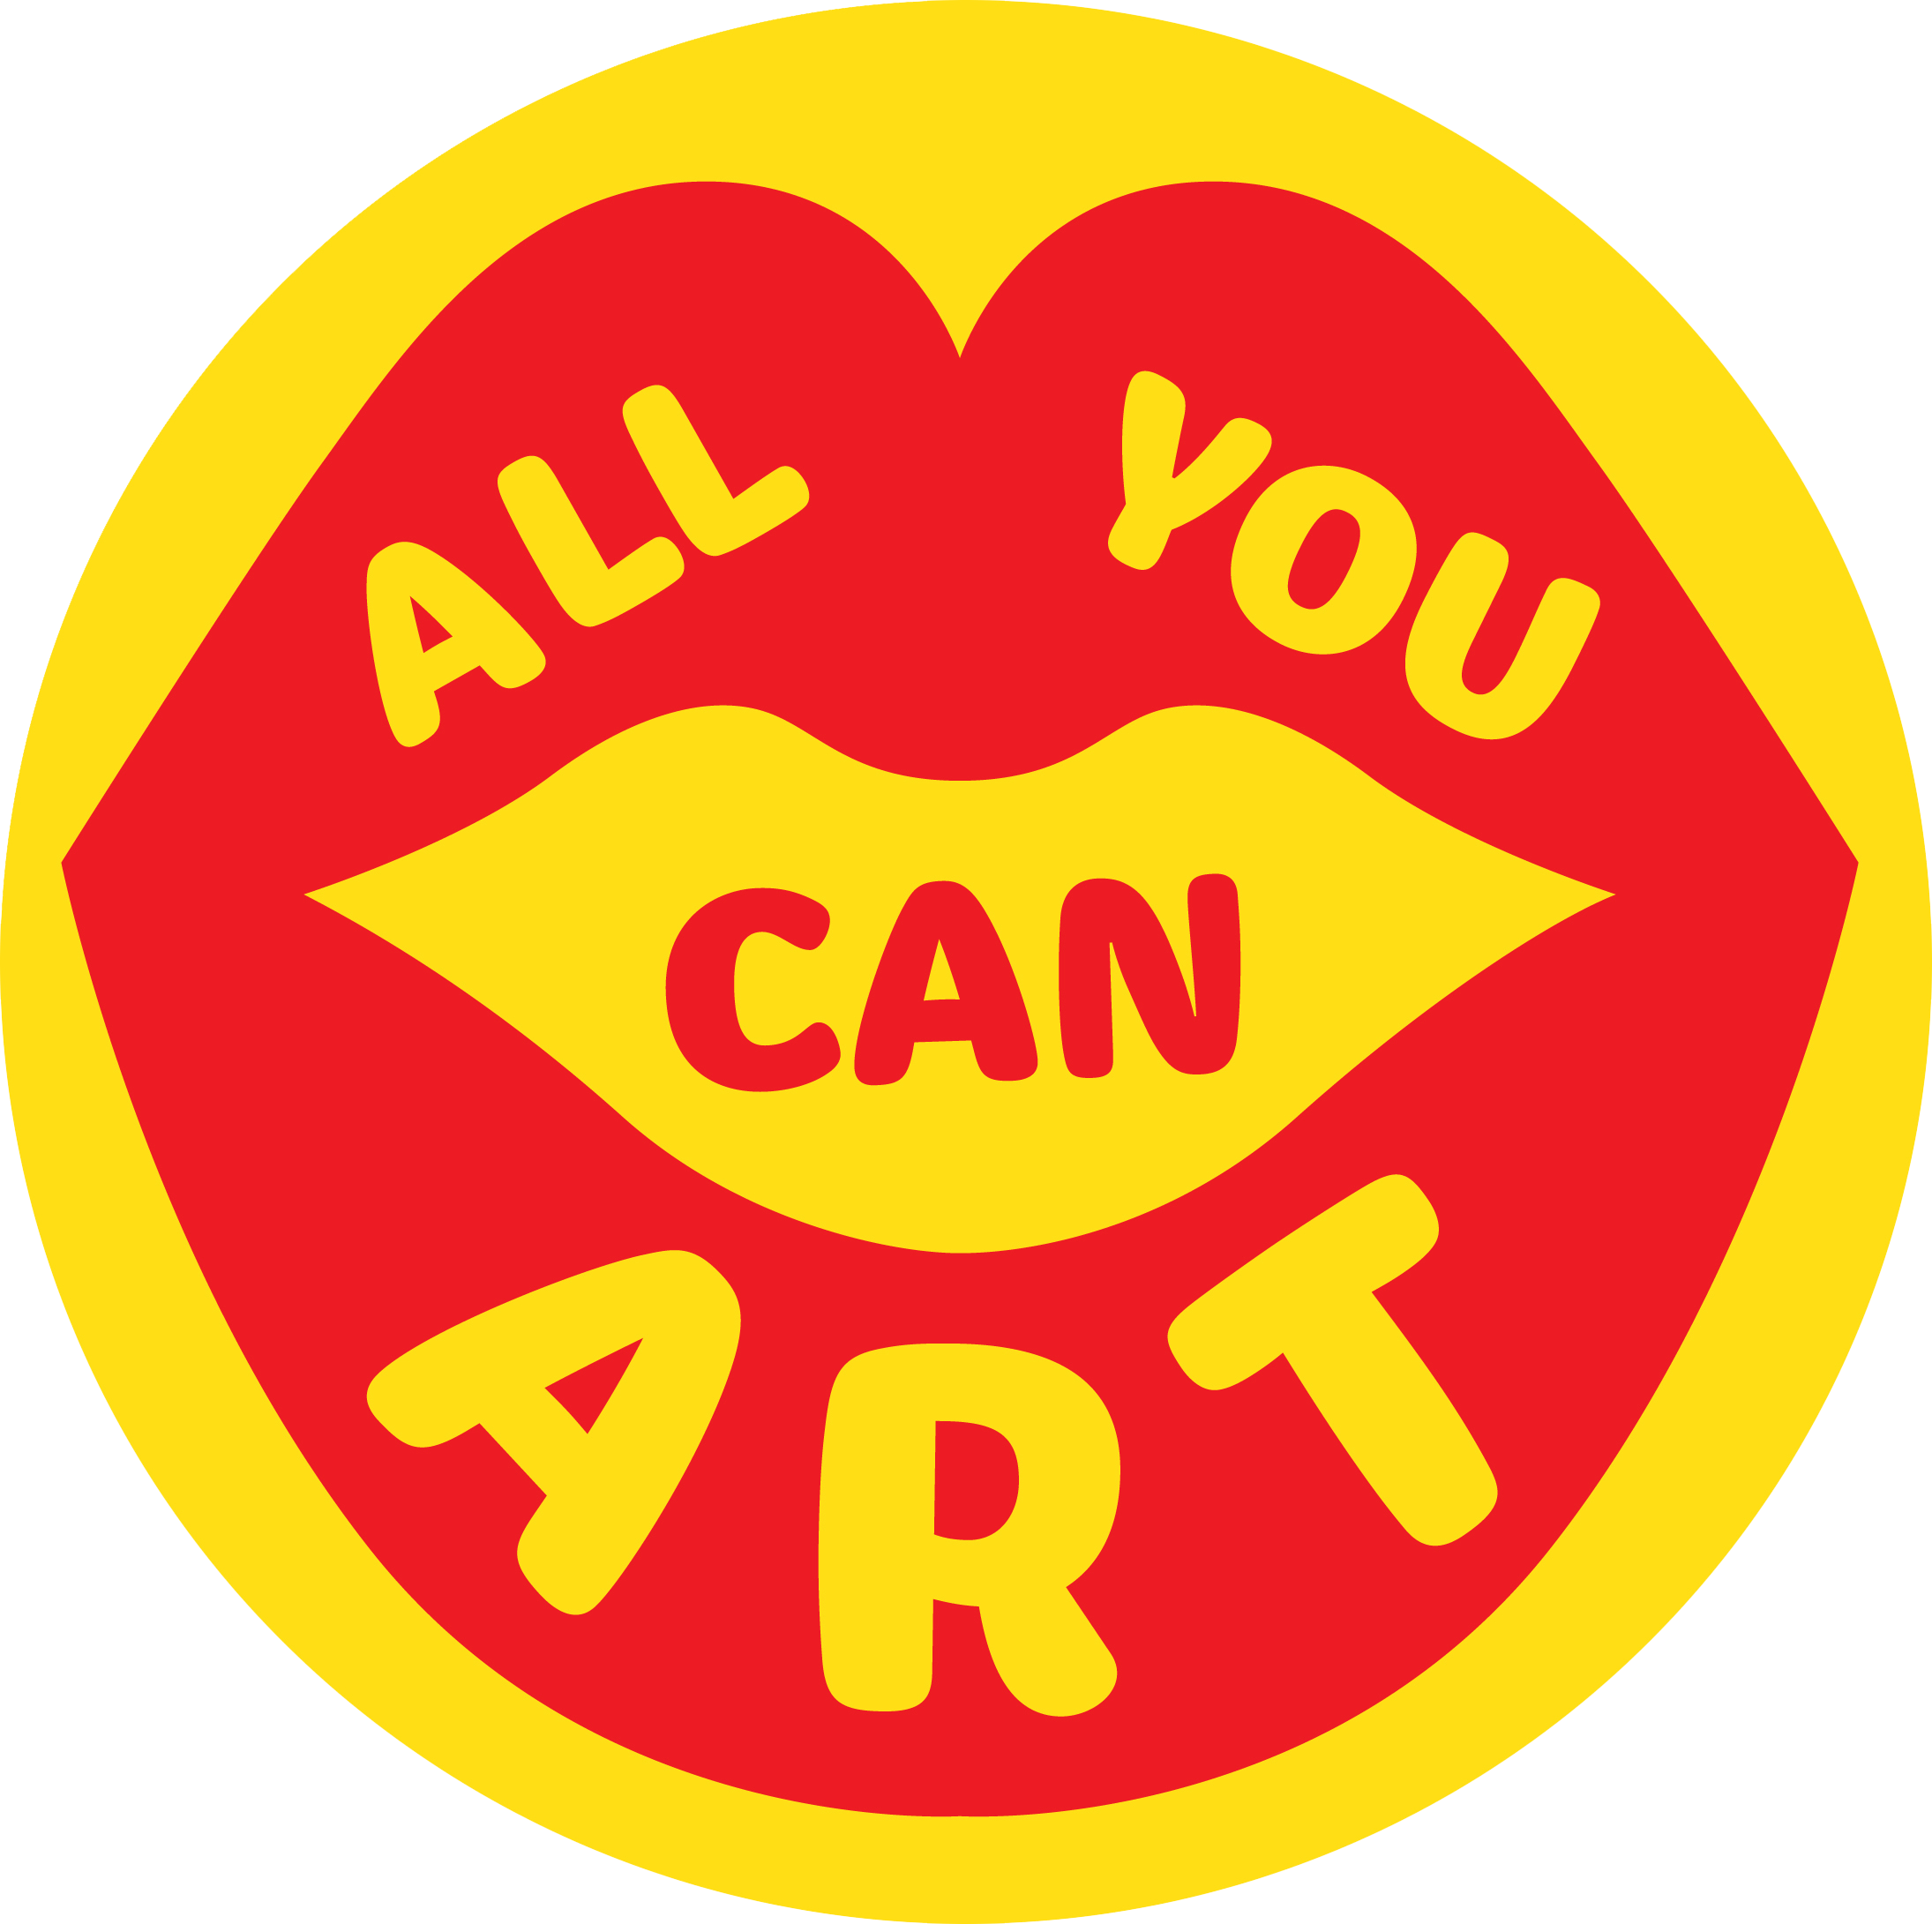 All you can art_logo rond_HR.png